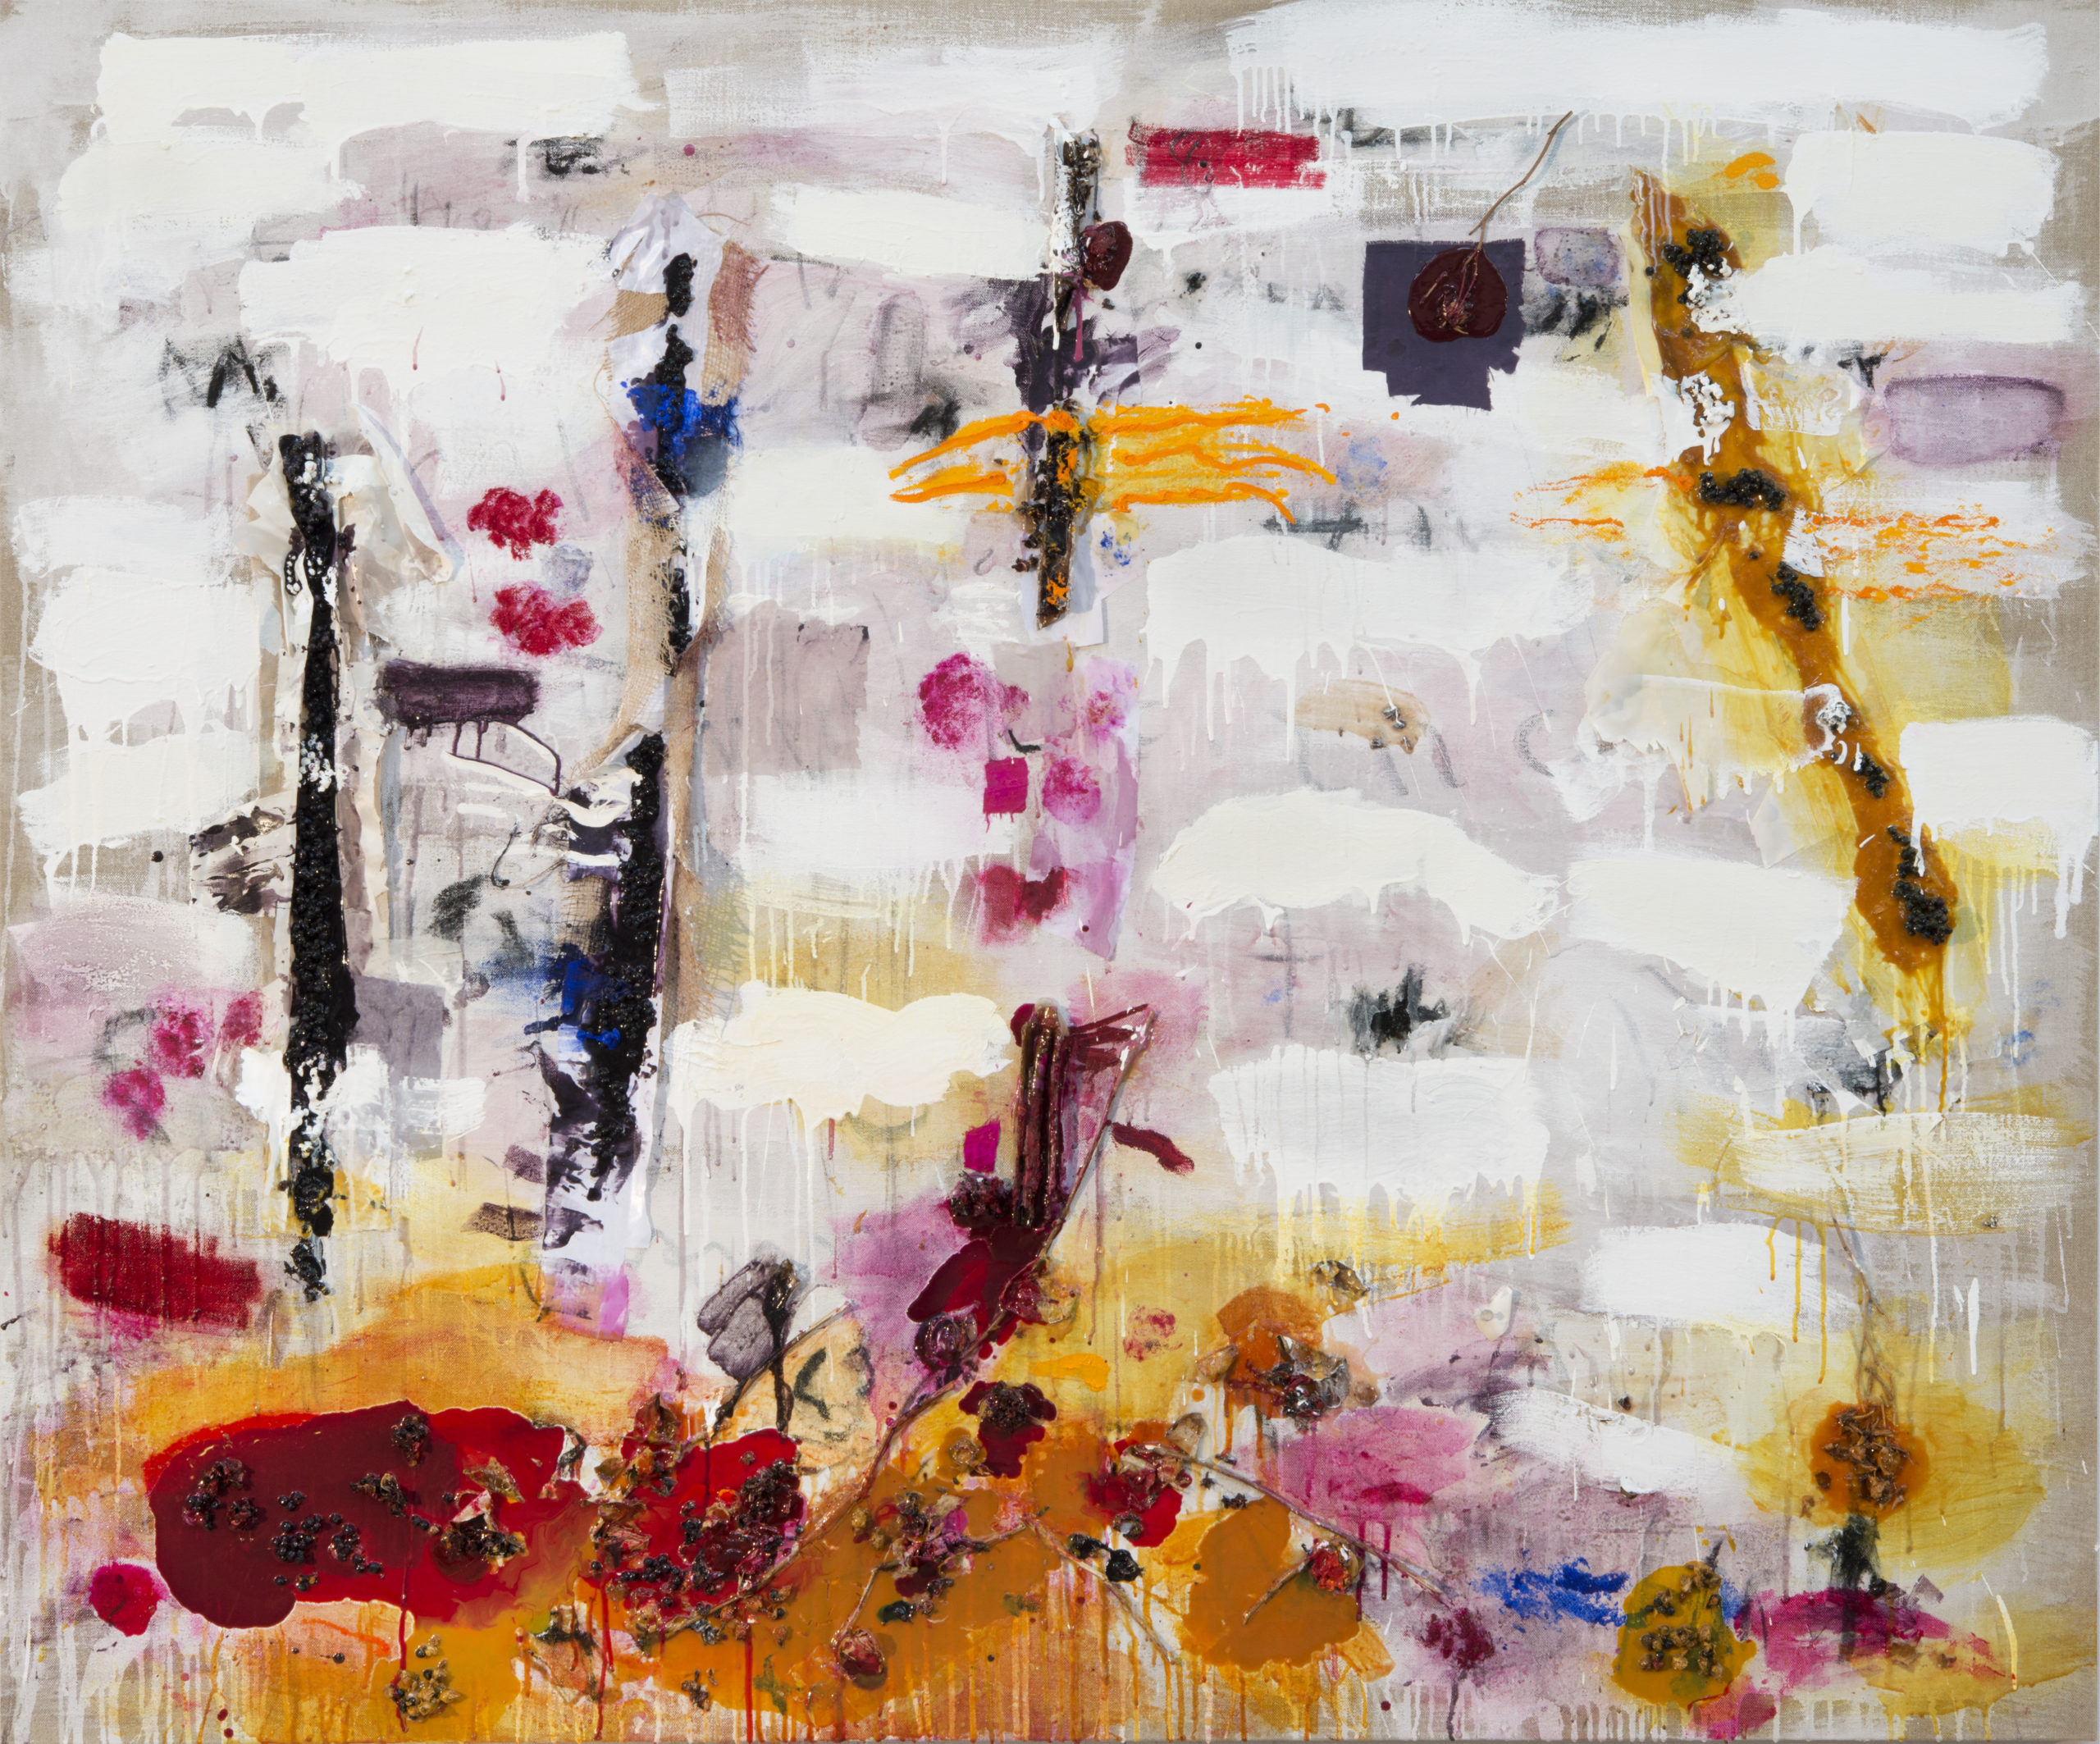 Joan Snyder, Silk and Berries, 2013, oil, acrylic, charcoal, burlap, silk, berries, herbs, dried flowers on linen, 152.4 x 182.8 cm